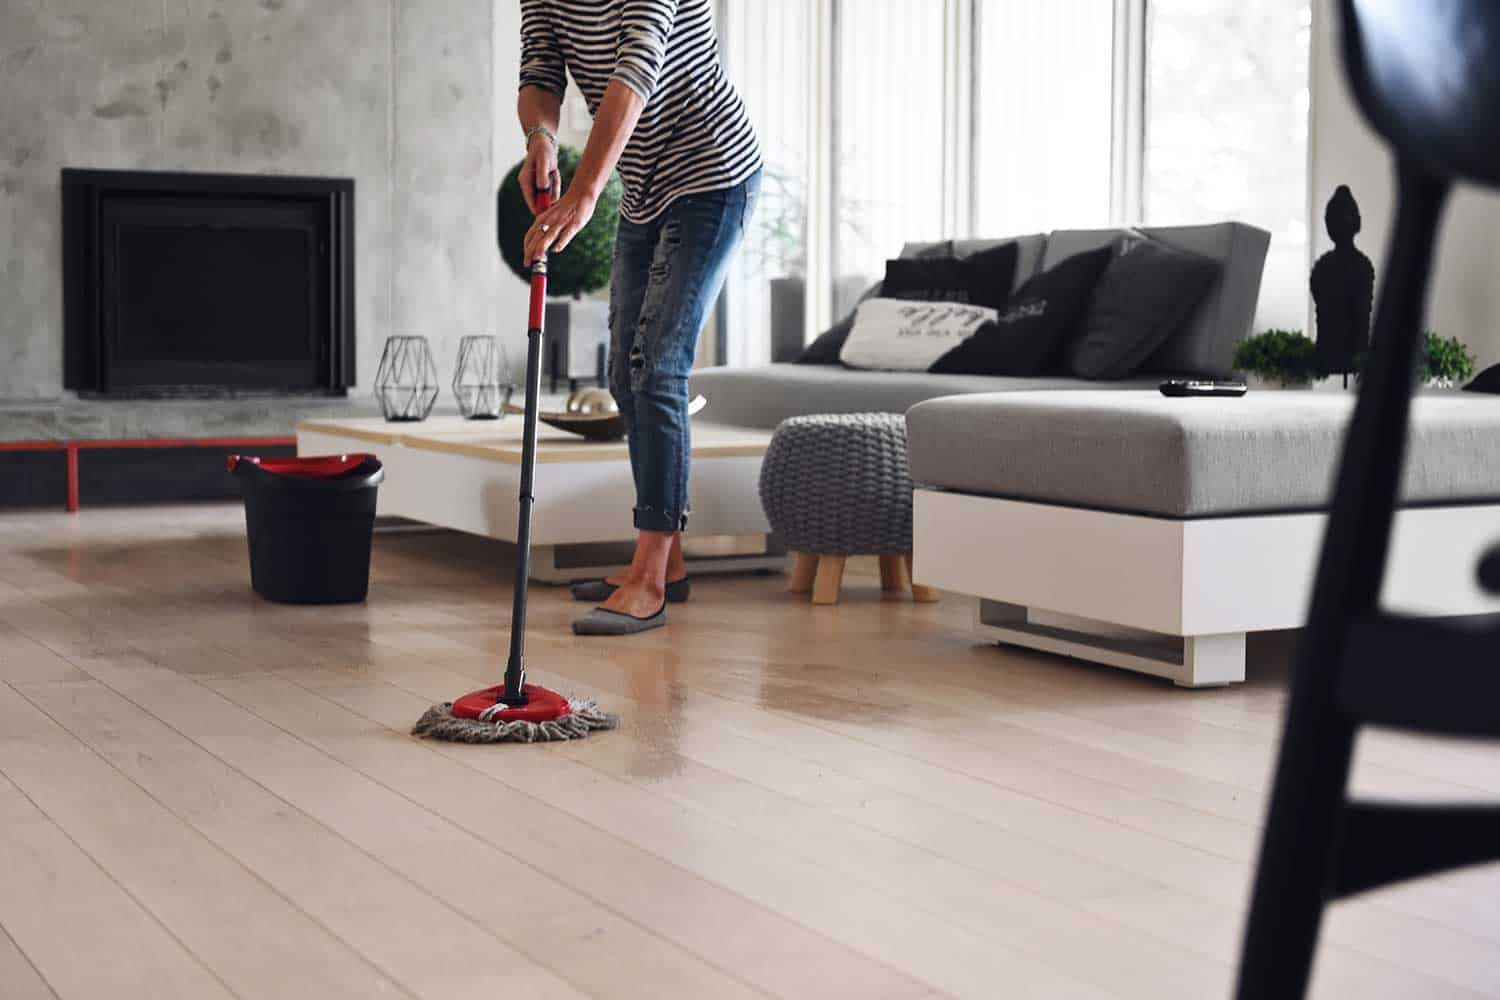 Mature woman cleaning floor while quarantined at home